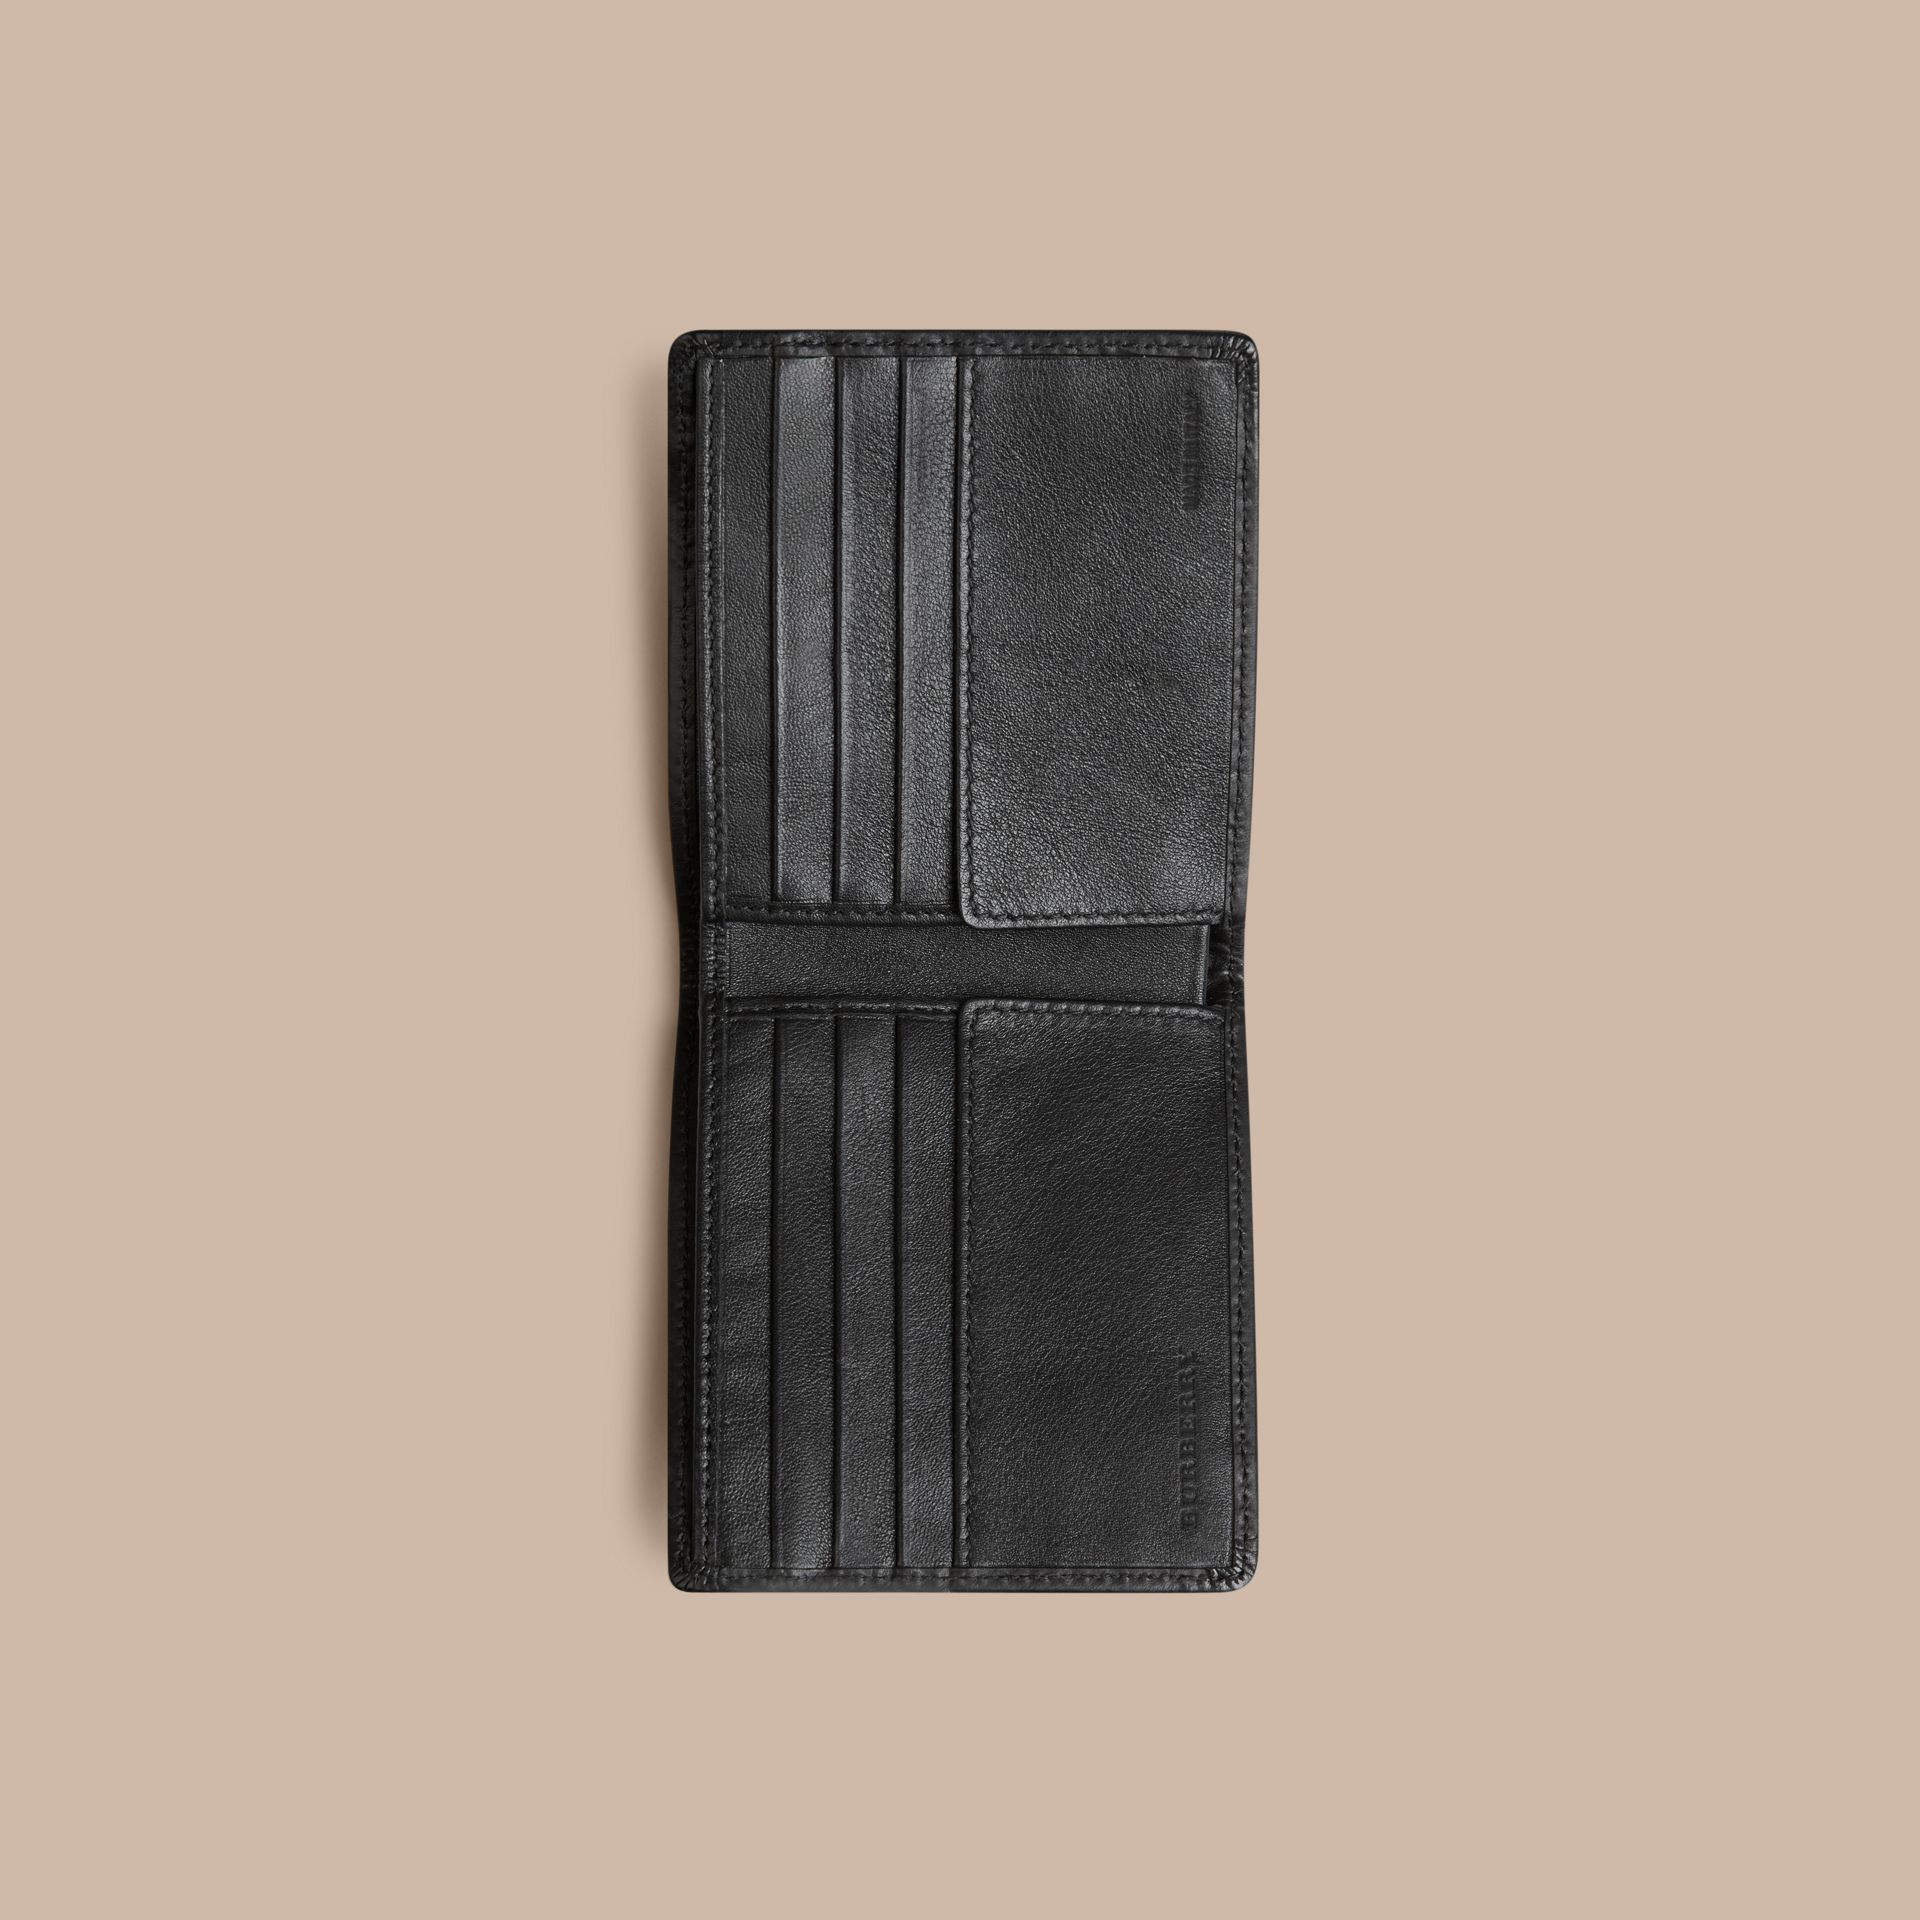 Charcoal/black Horseferry Check Folding Wallet Charcoal/black - gallery image 4